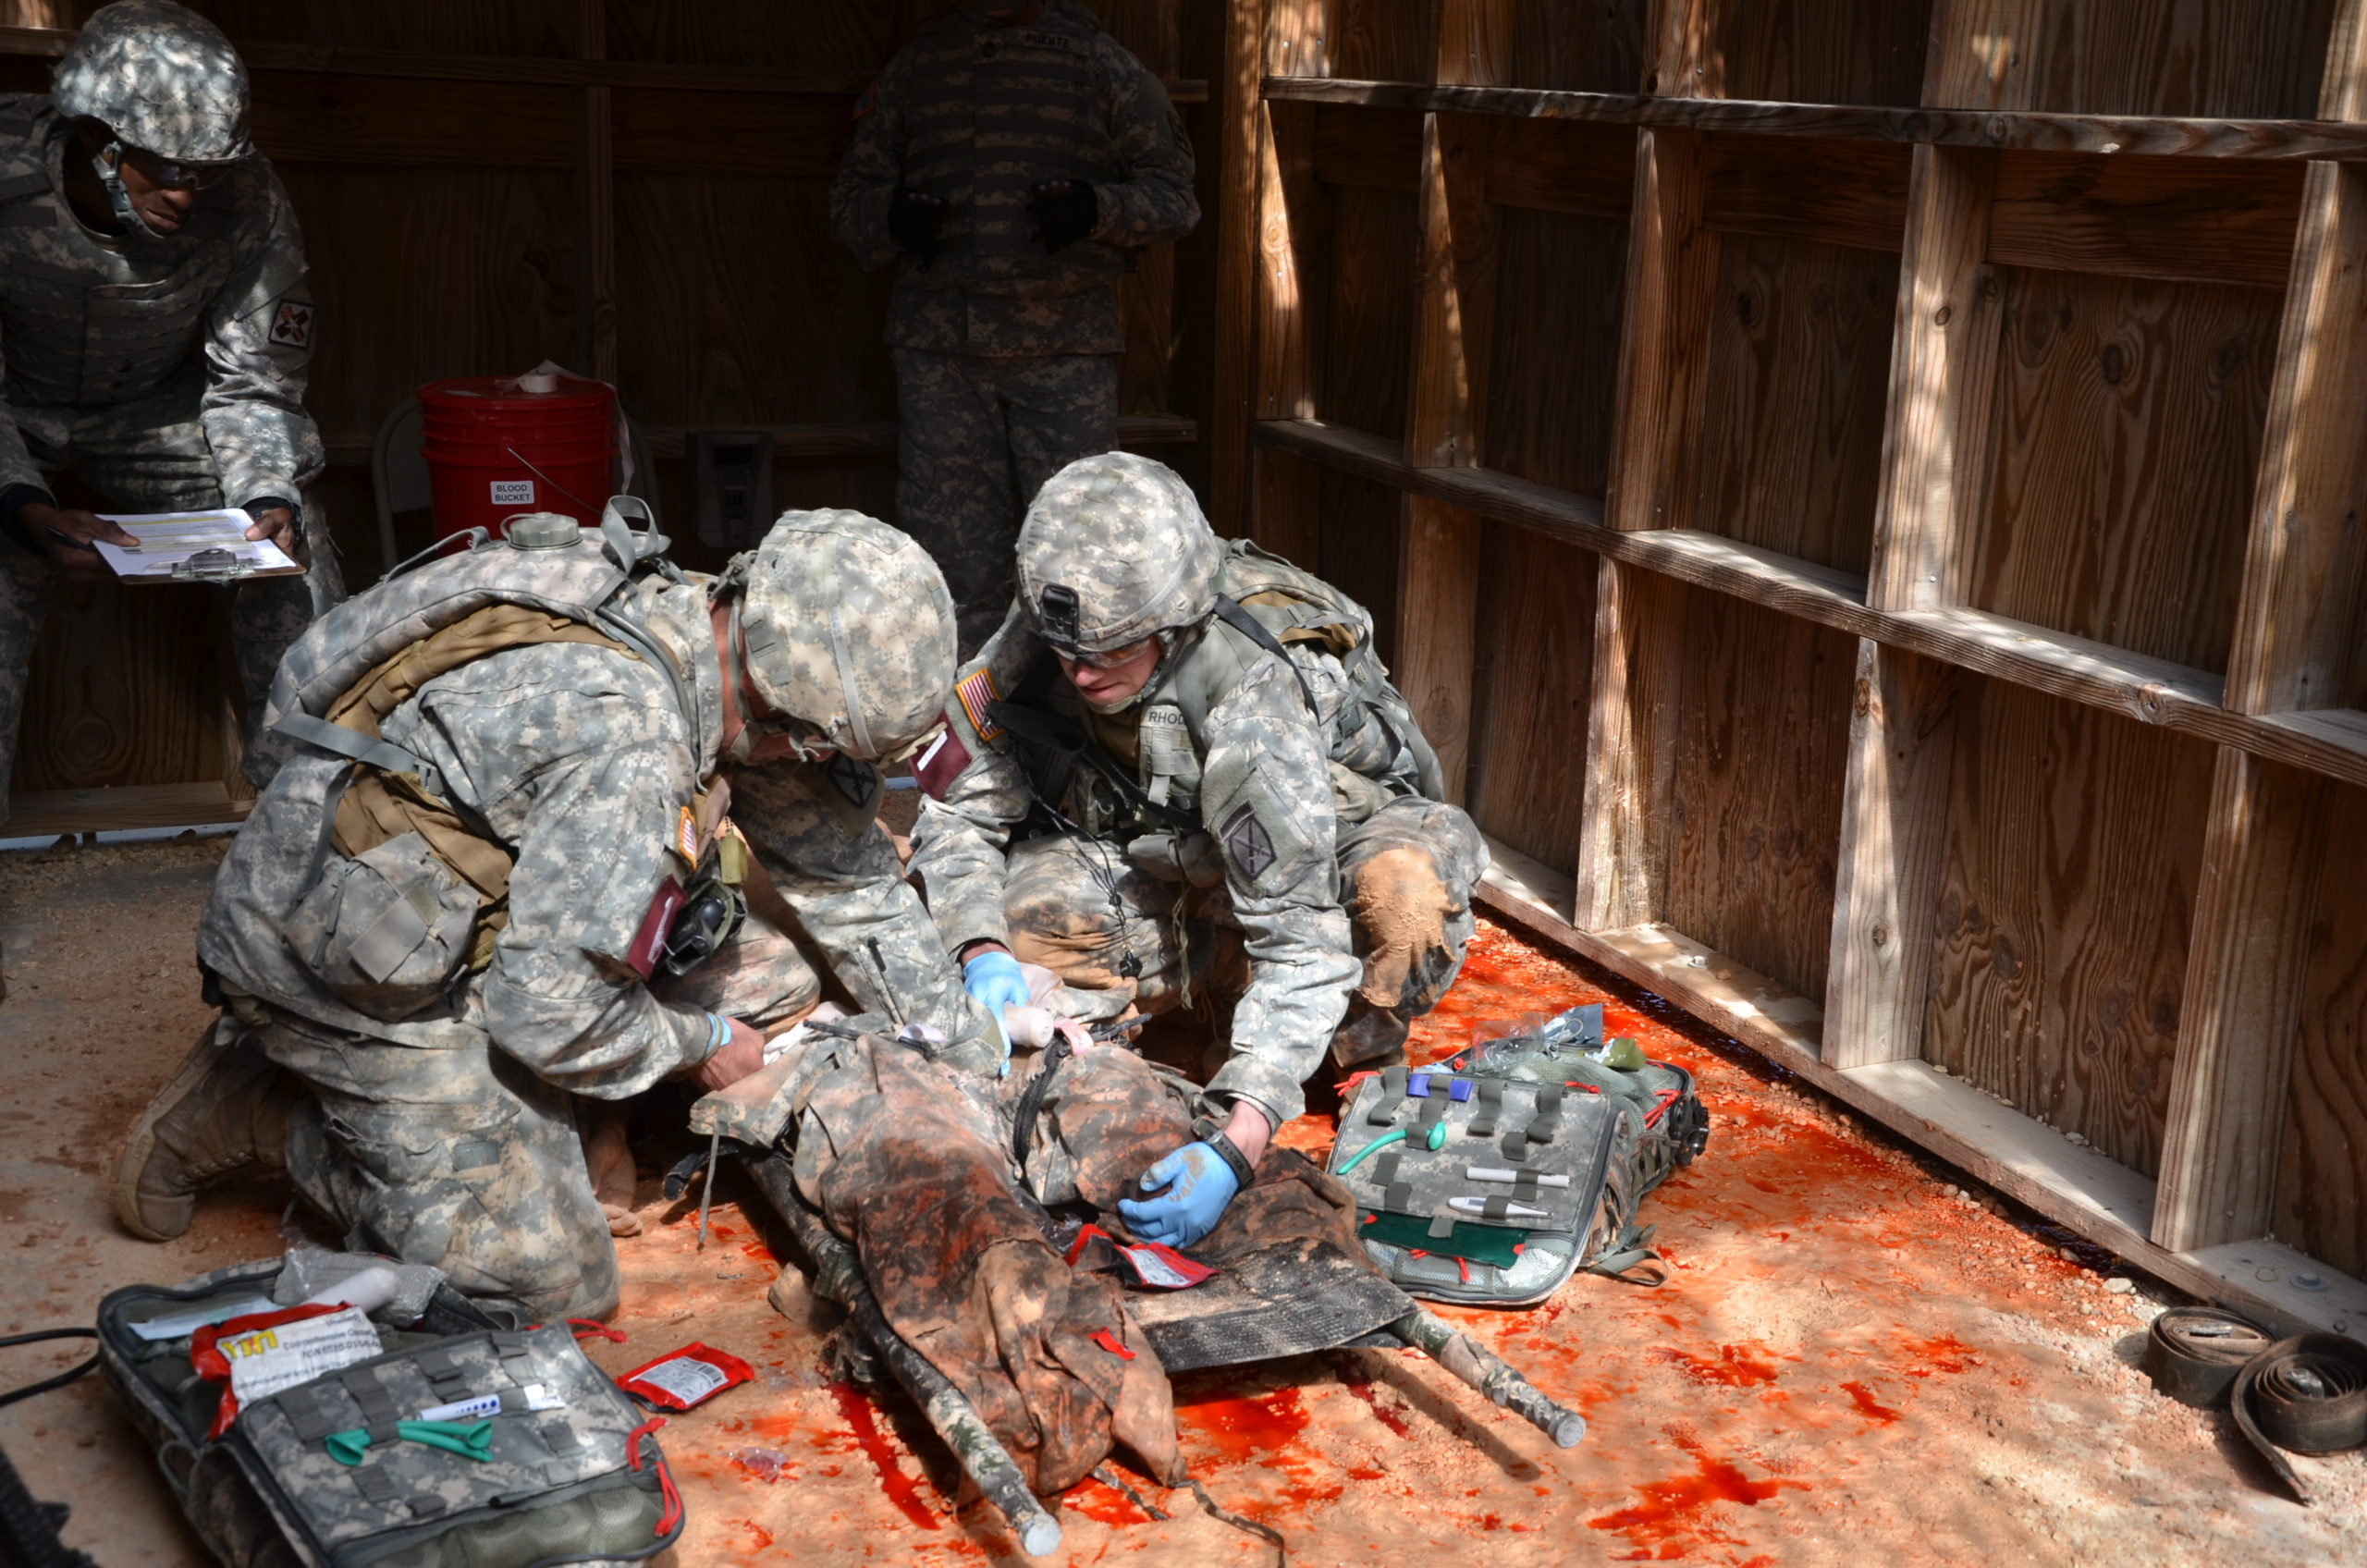 Sgt. Ryan Savoy and Spc. Caleb Rhodes, representing the 10th Mountain Division, Fort Drum, N.Y., perform combat casualty care during the Command Sgt. Maj. Jack L. Clark Jr. U.S. Army Best Medic Competition Oct. 26 to 28 at Joint Base San Antonio-Camp Bullis. (Photo Credit: Lori Newman, JBSAFort Sam Houston Public Affairs)